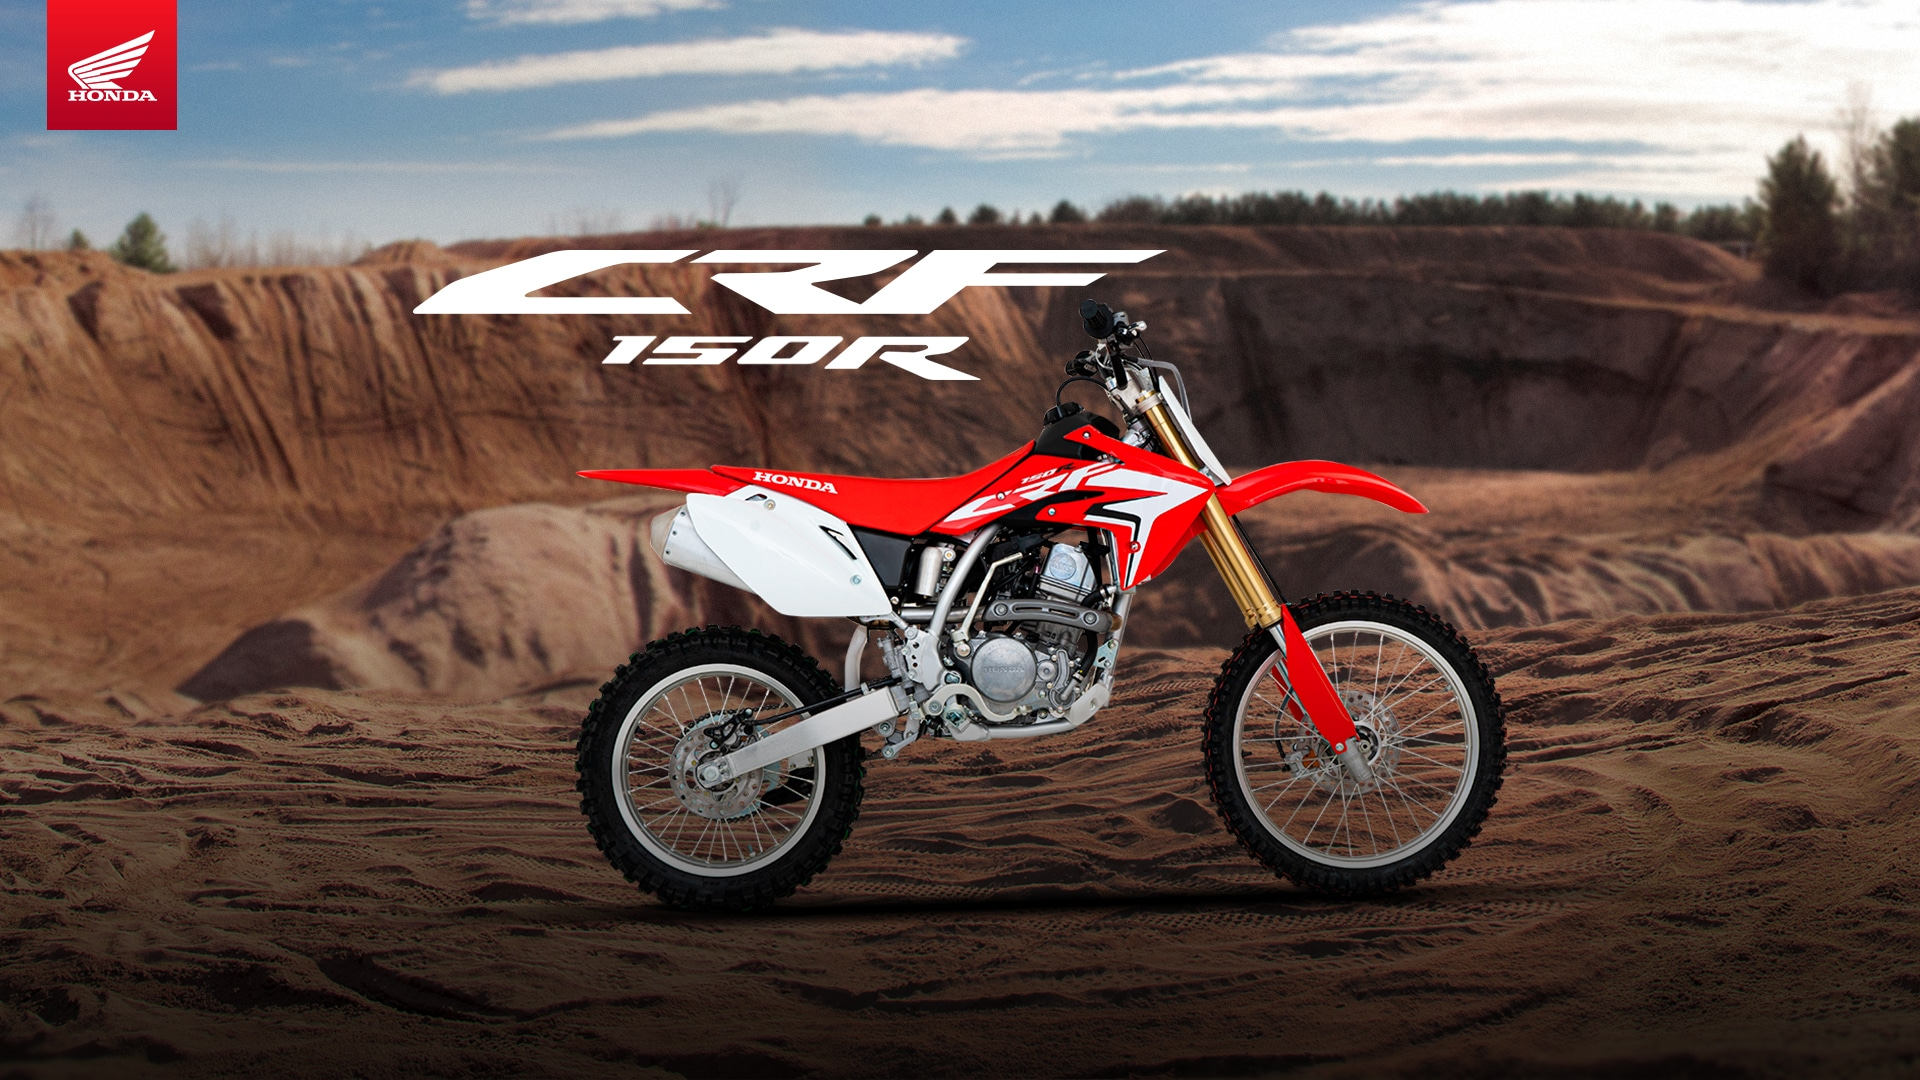 Newcrf150rb_banner